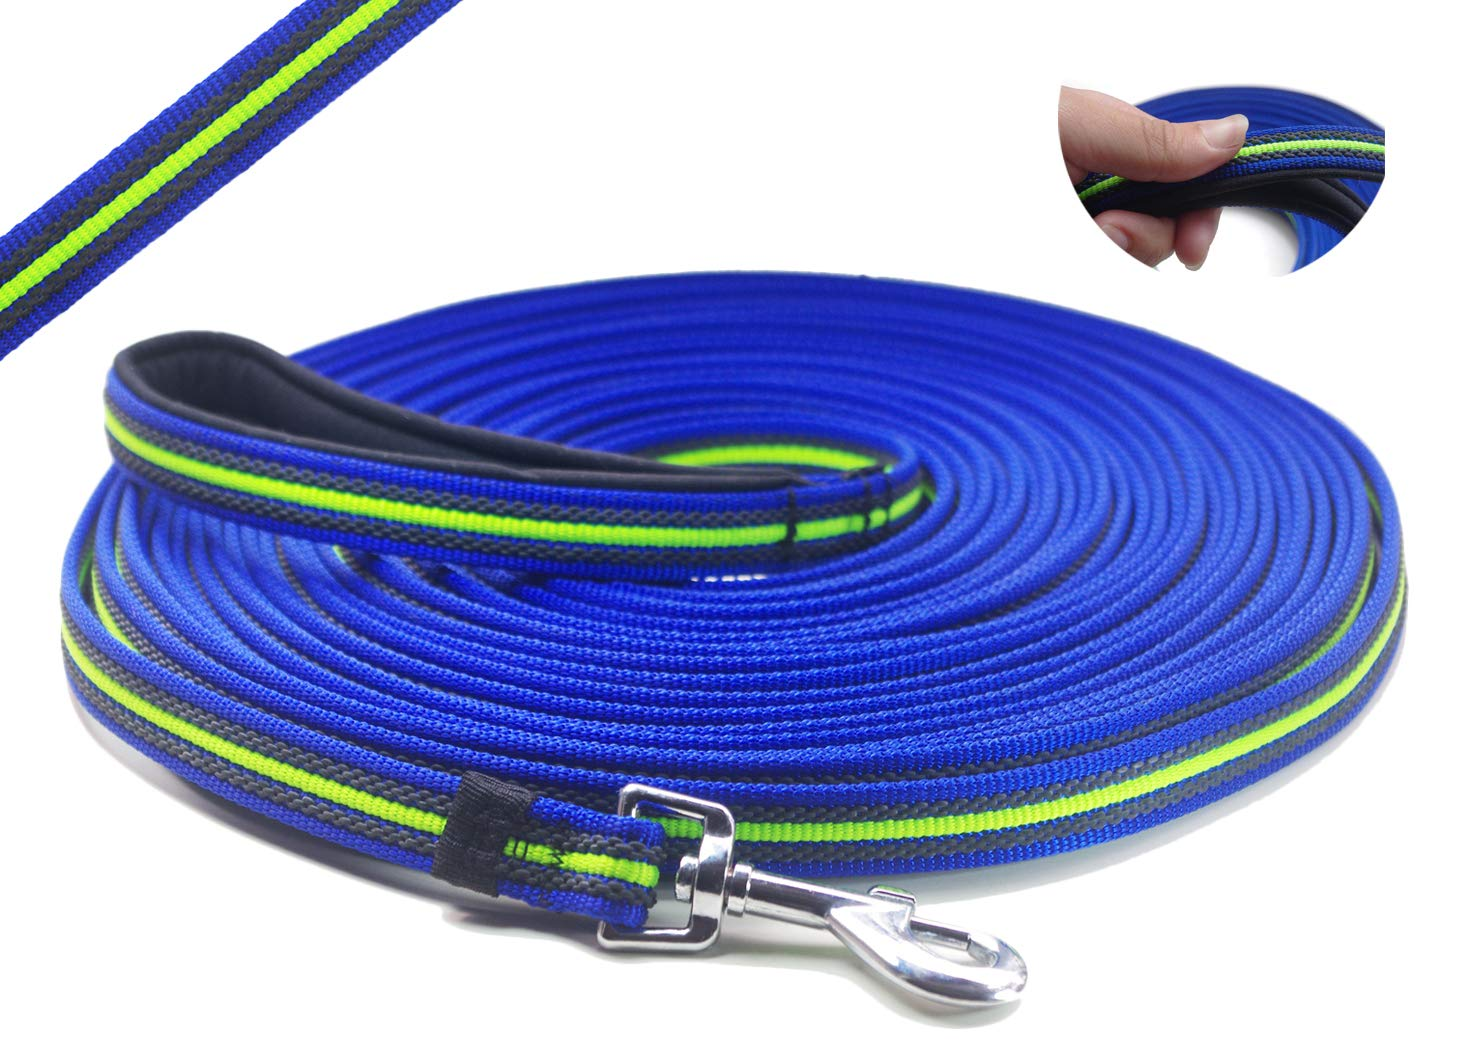 YOOGAO Pet Dog Training Leash Long Dog Lead with Special Non-Slip Design and Padded Handle, 10-50 ft, for Any Szie of Dogs by YOOGAO Pet